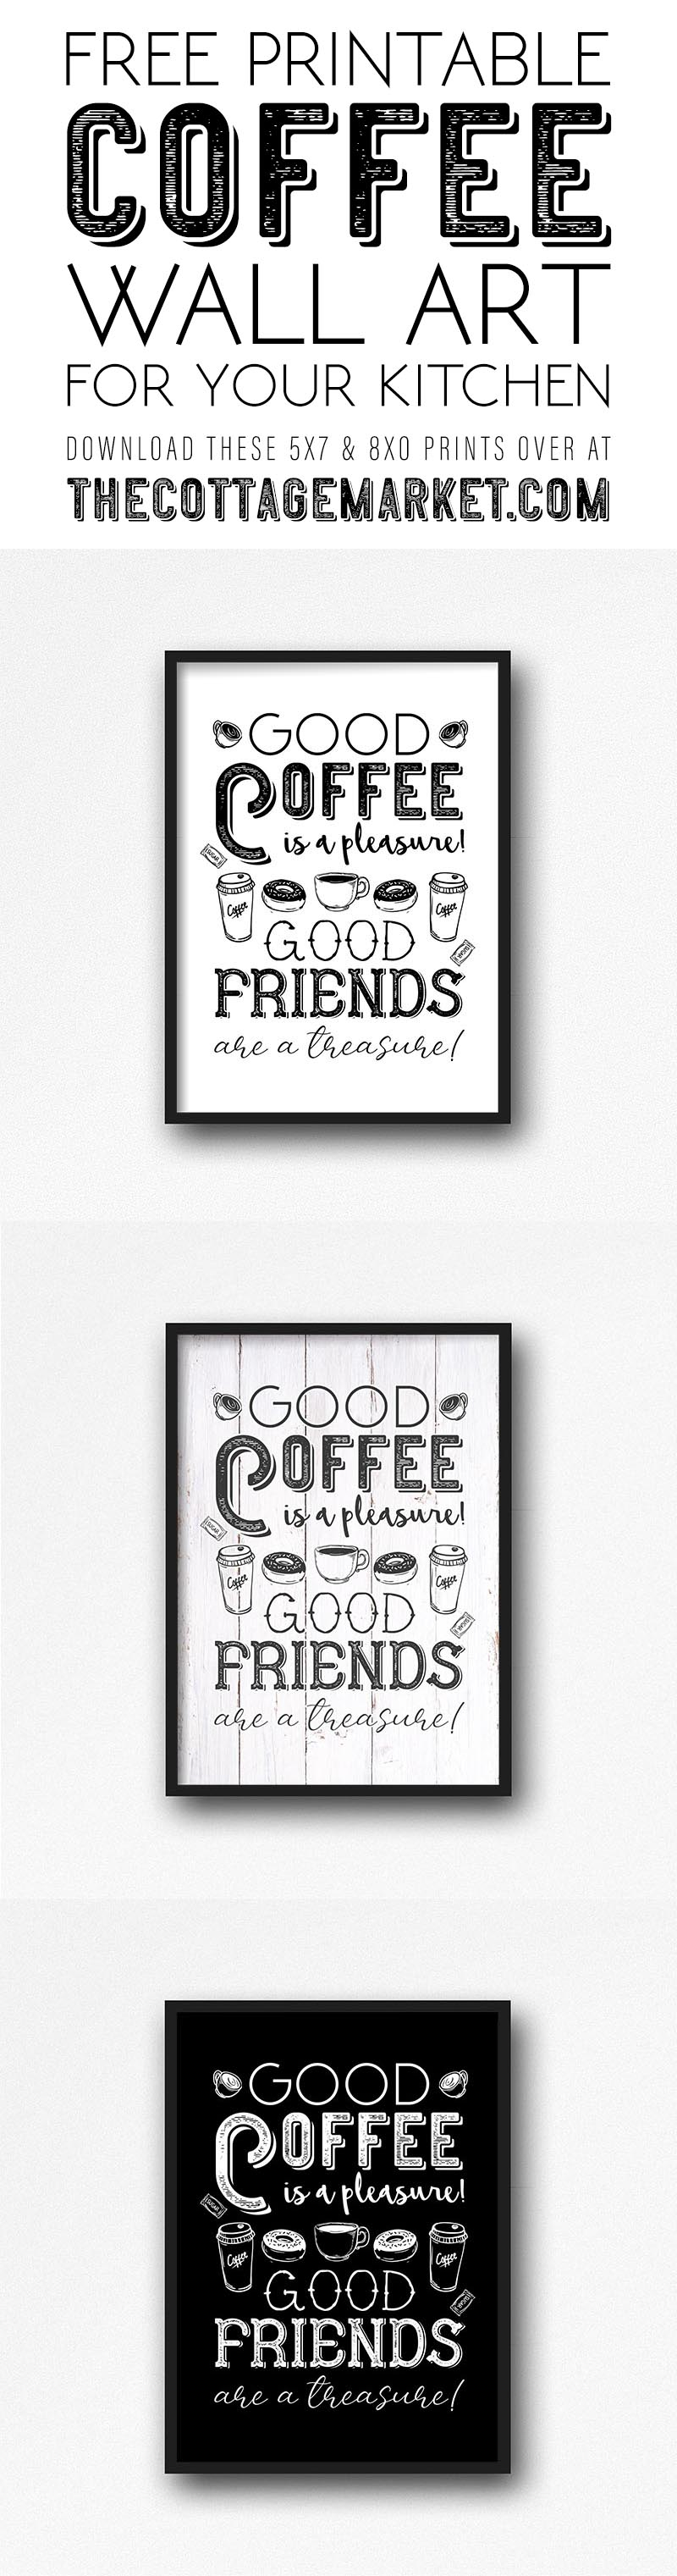 https://thecottagemarket.com/wp-content/uploads/2020/02/TCM-CoffeeFriends-t-2.jpg